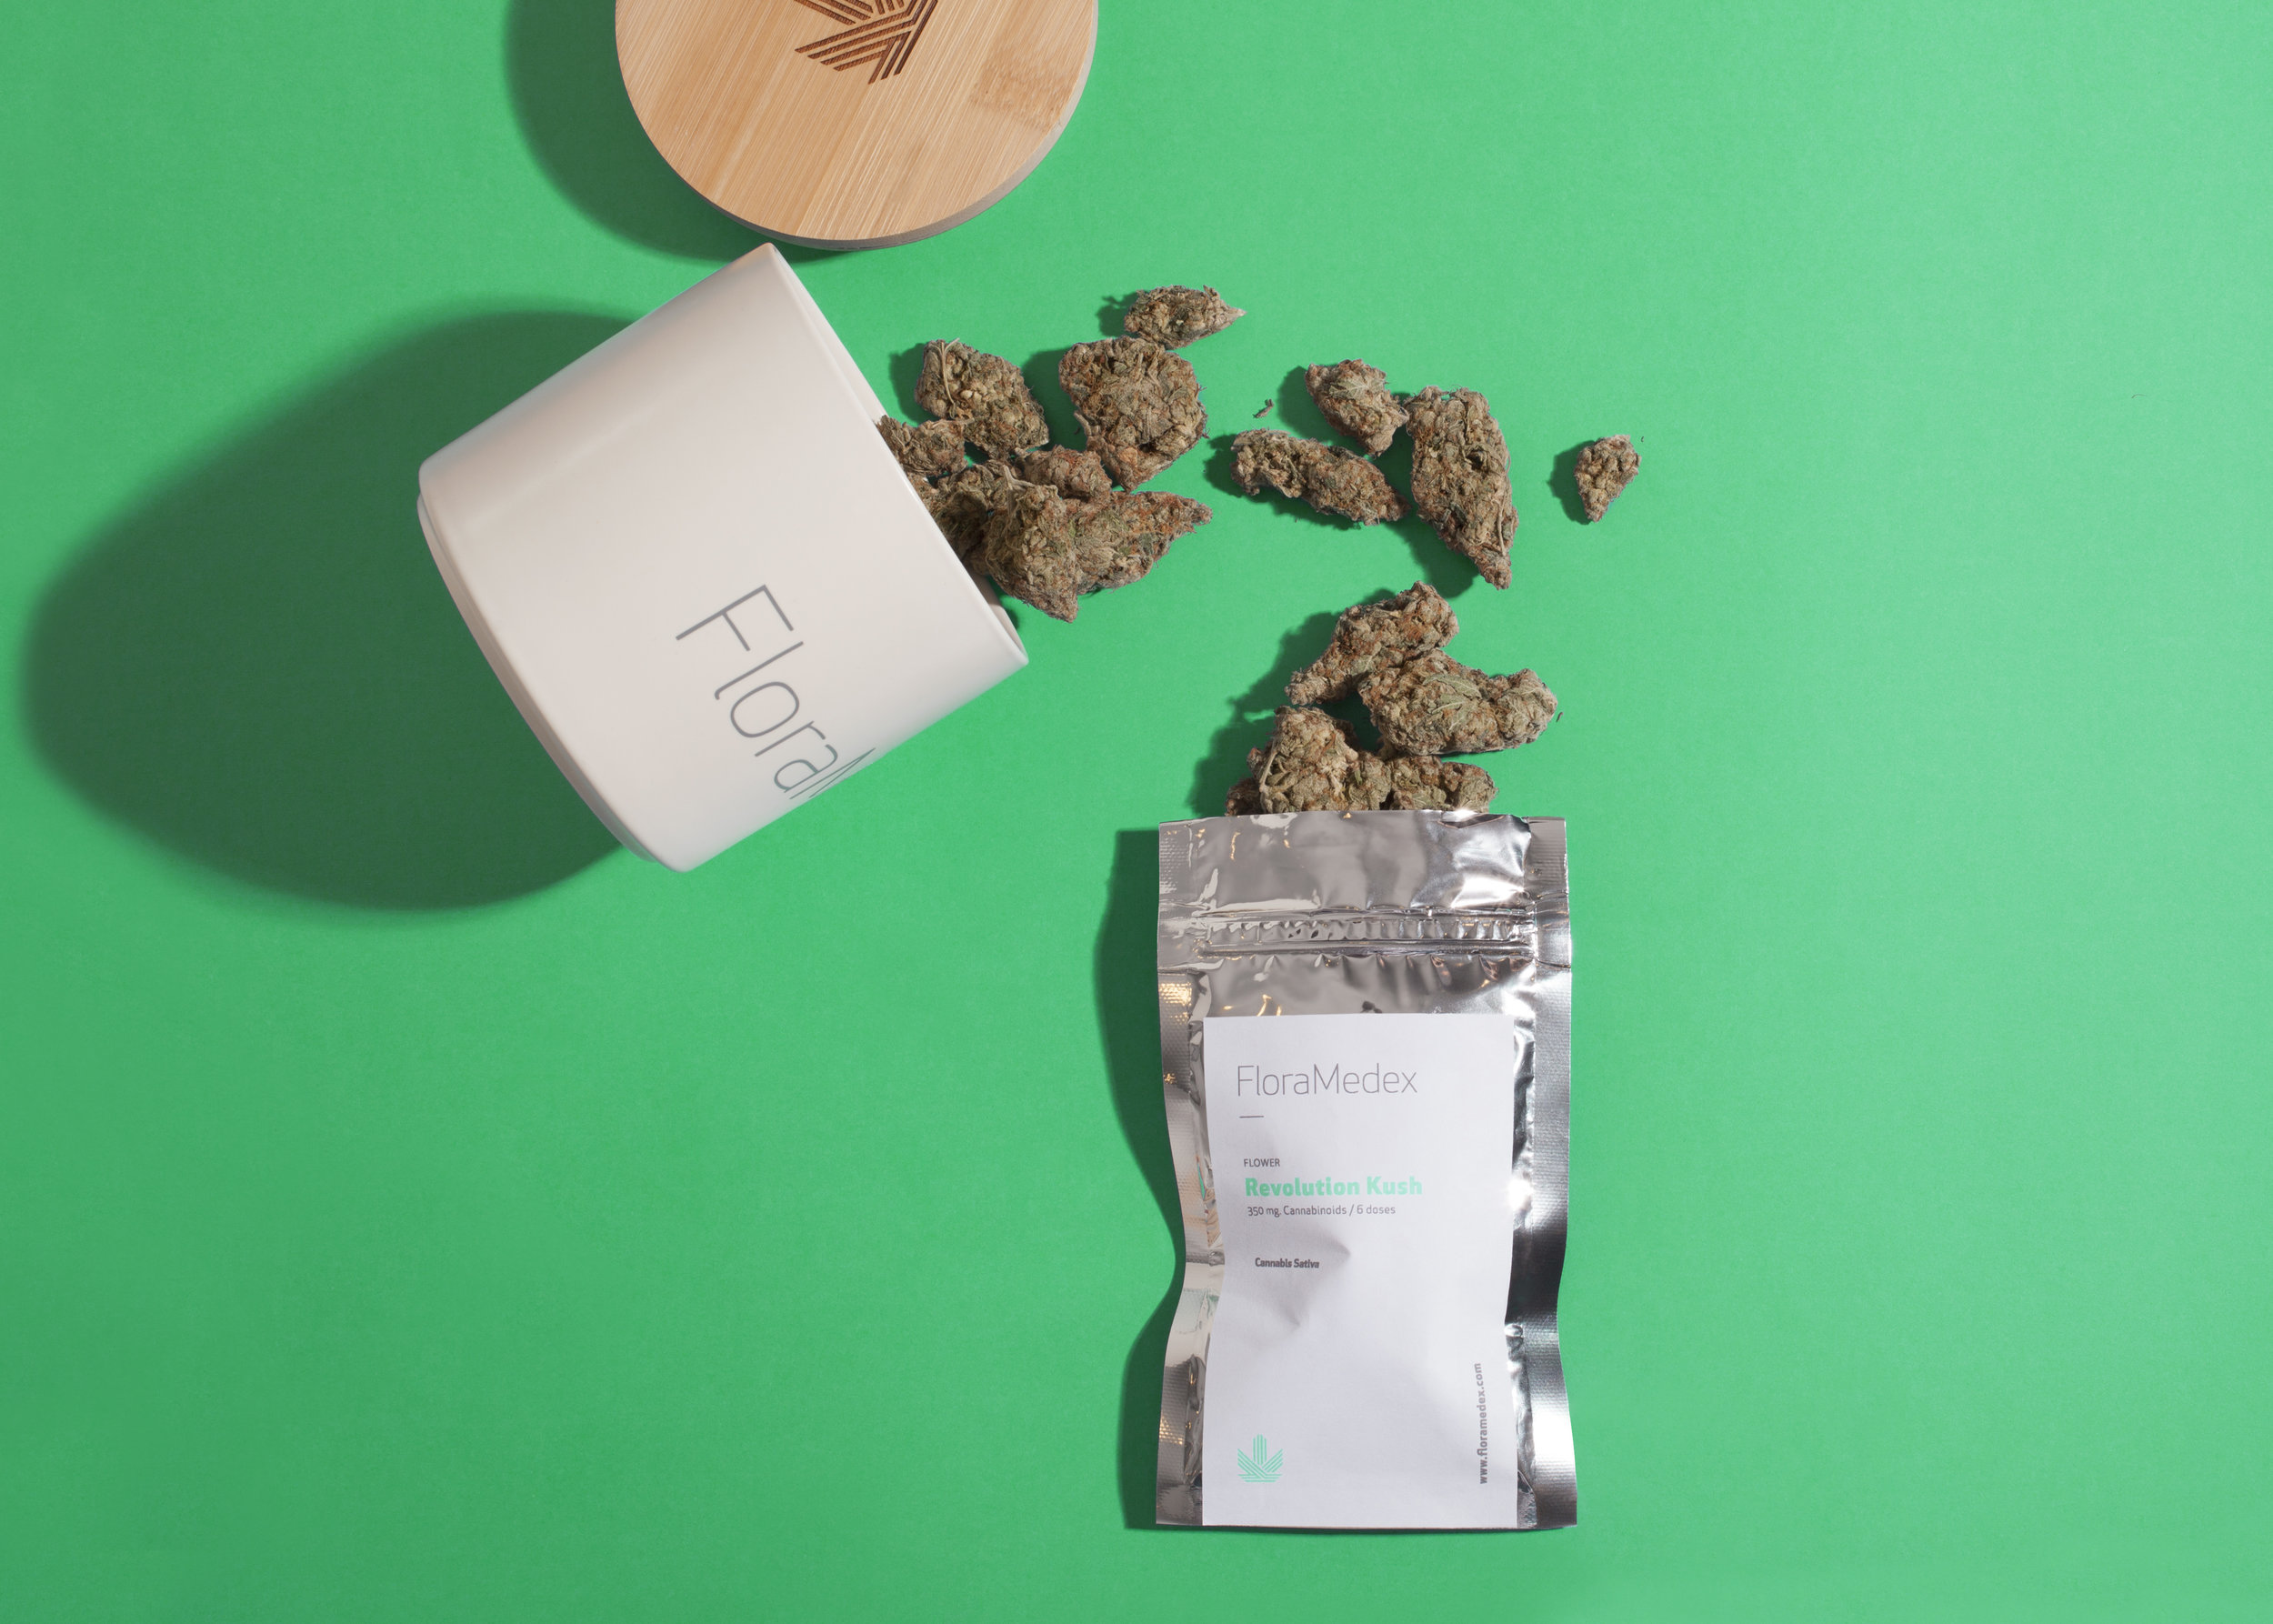 Floramedex by La Tortilleria | A Creative Company. Cannabis containers.